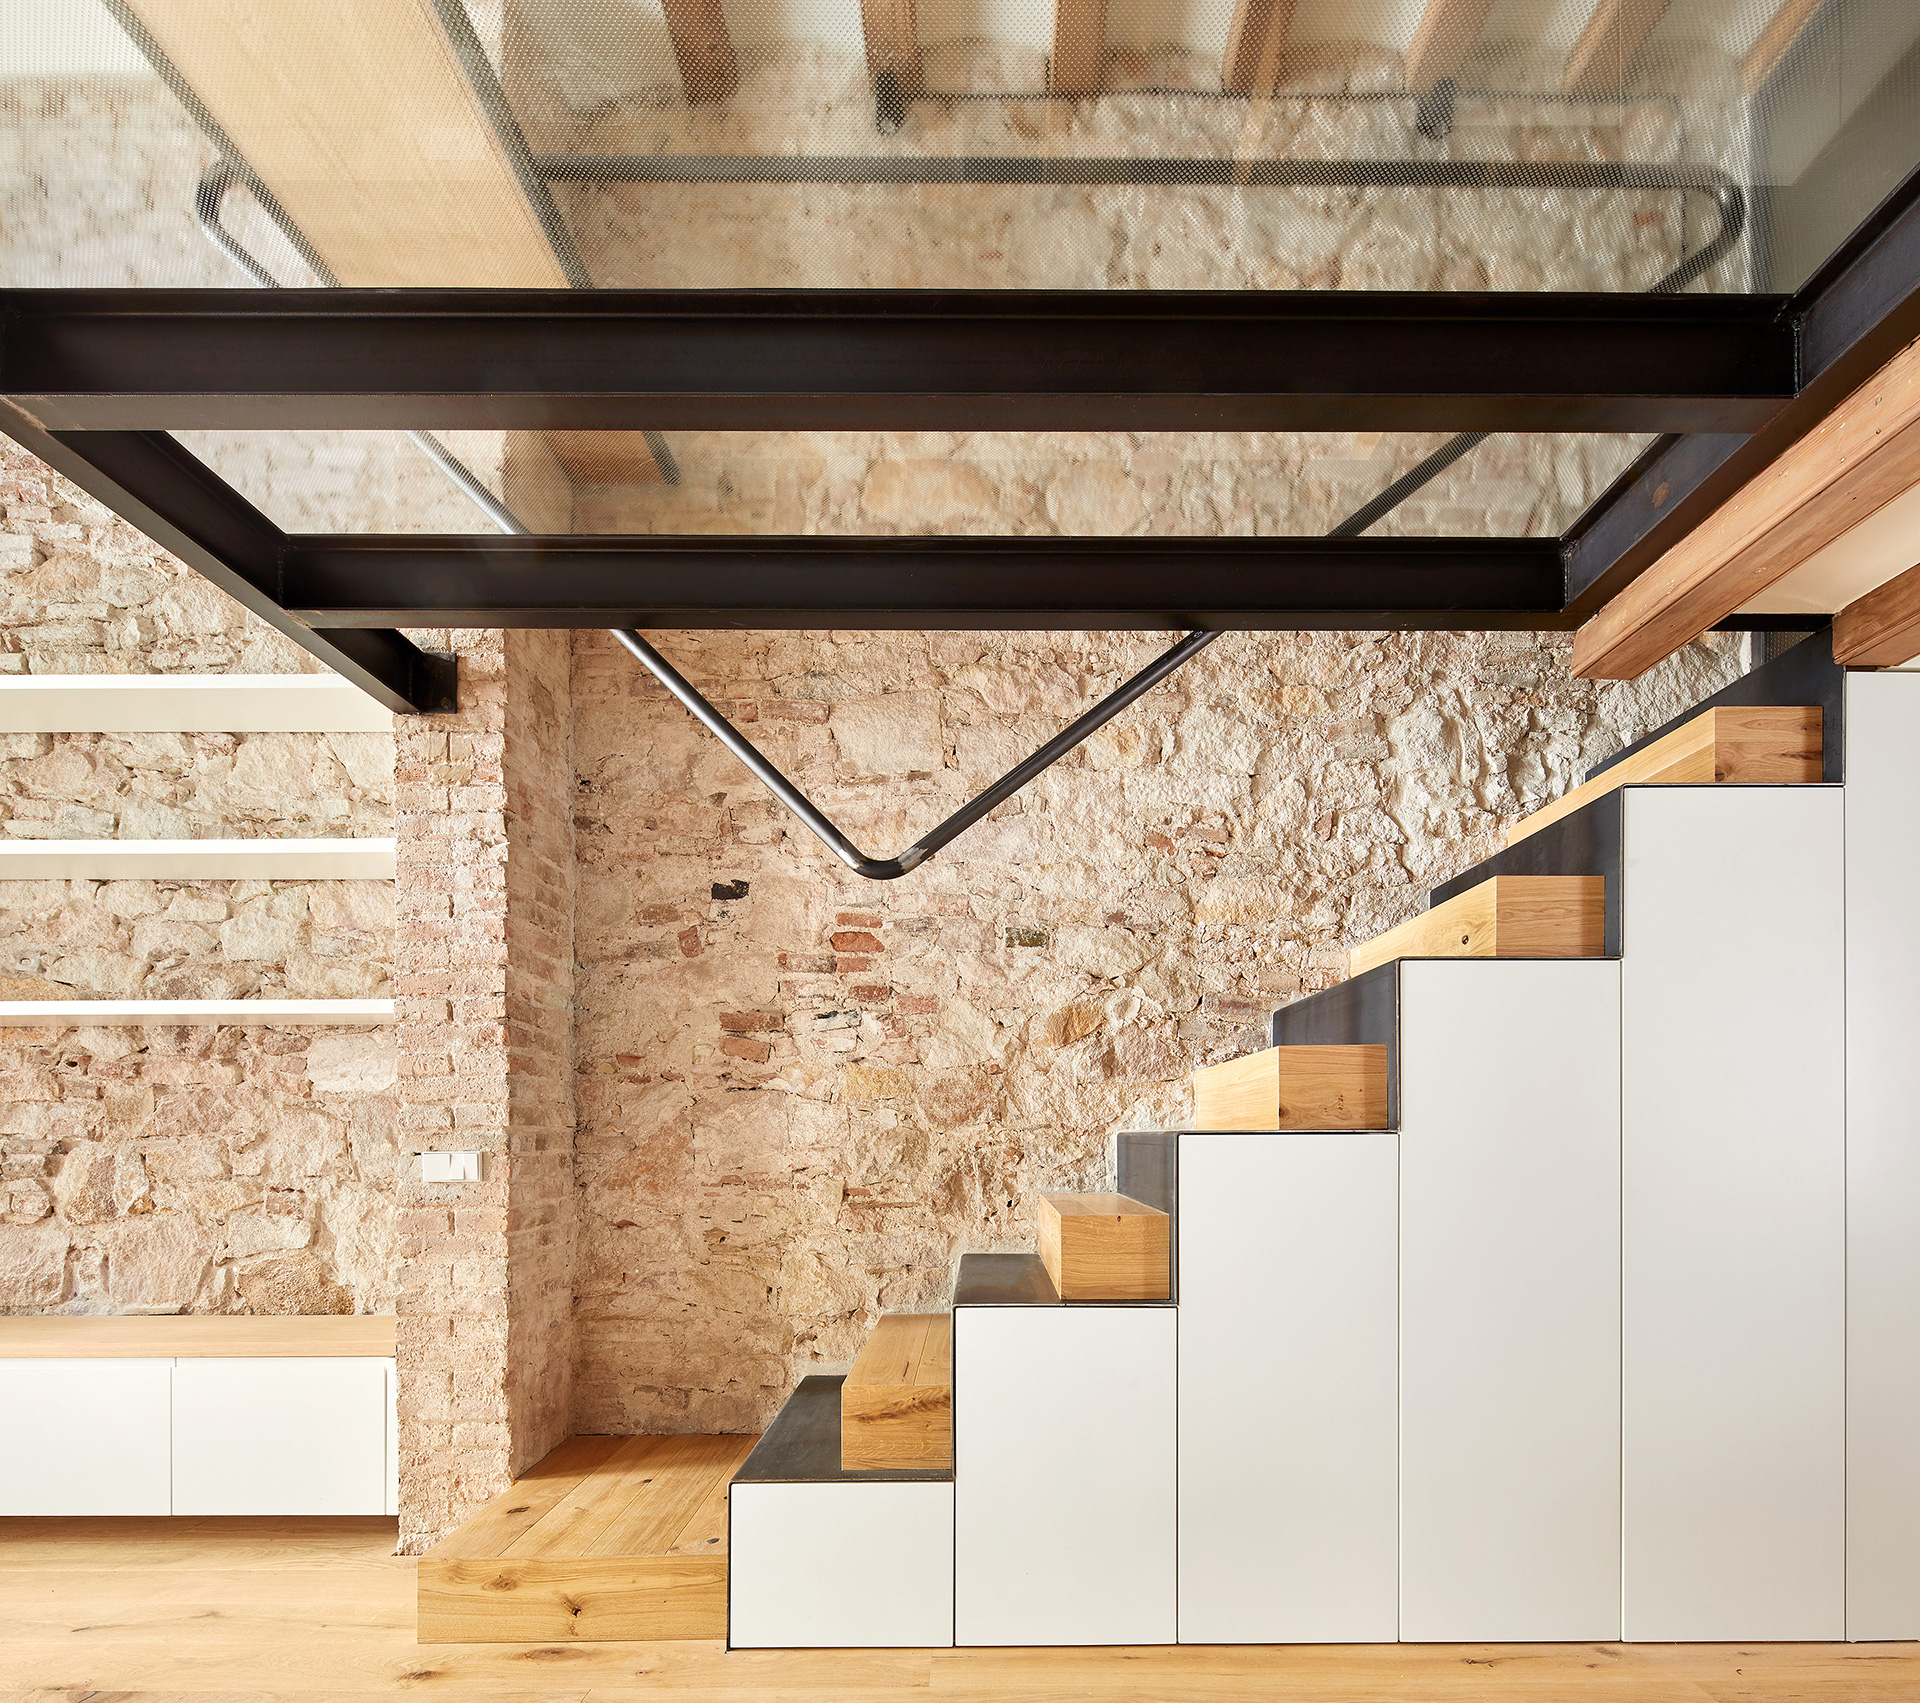 Stairs connecting the ground floor to the attic| Triplex at Sant Antoni | Valentí Albareda| STIR